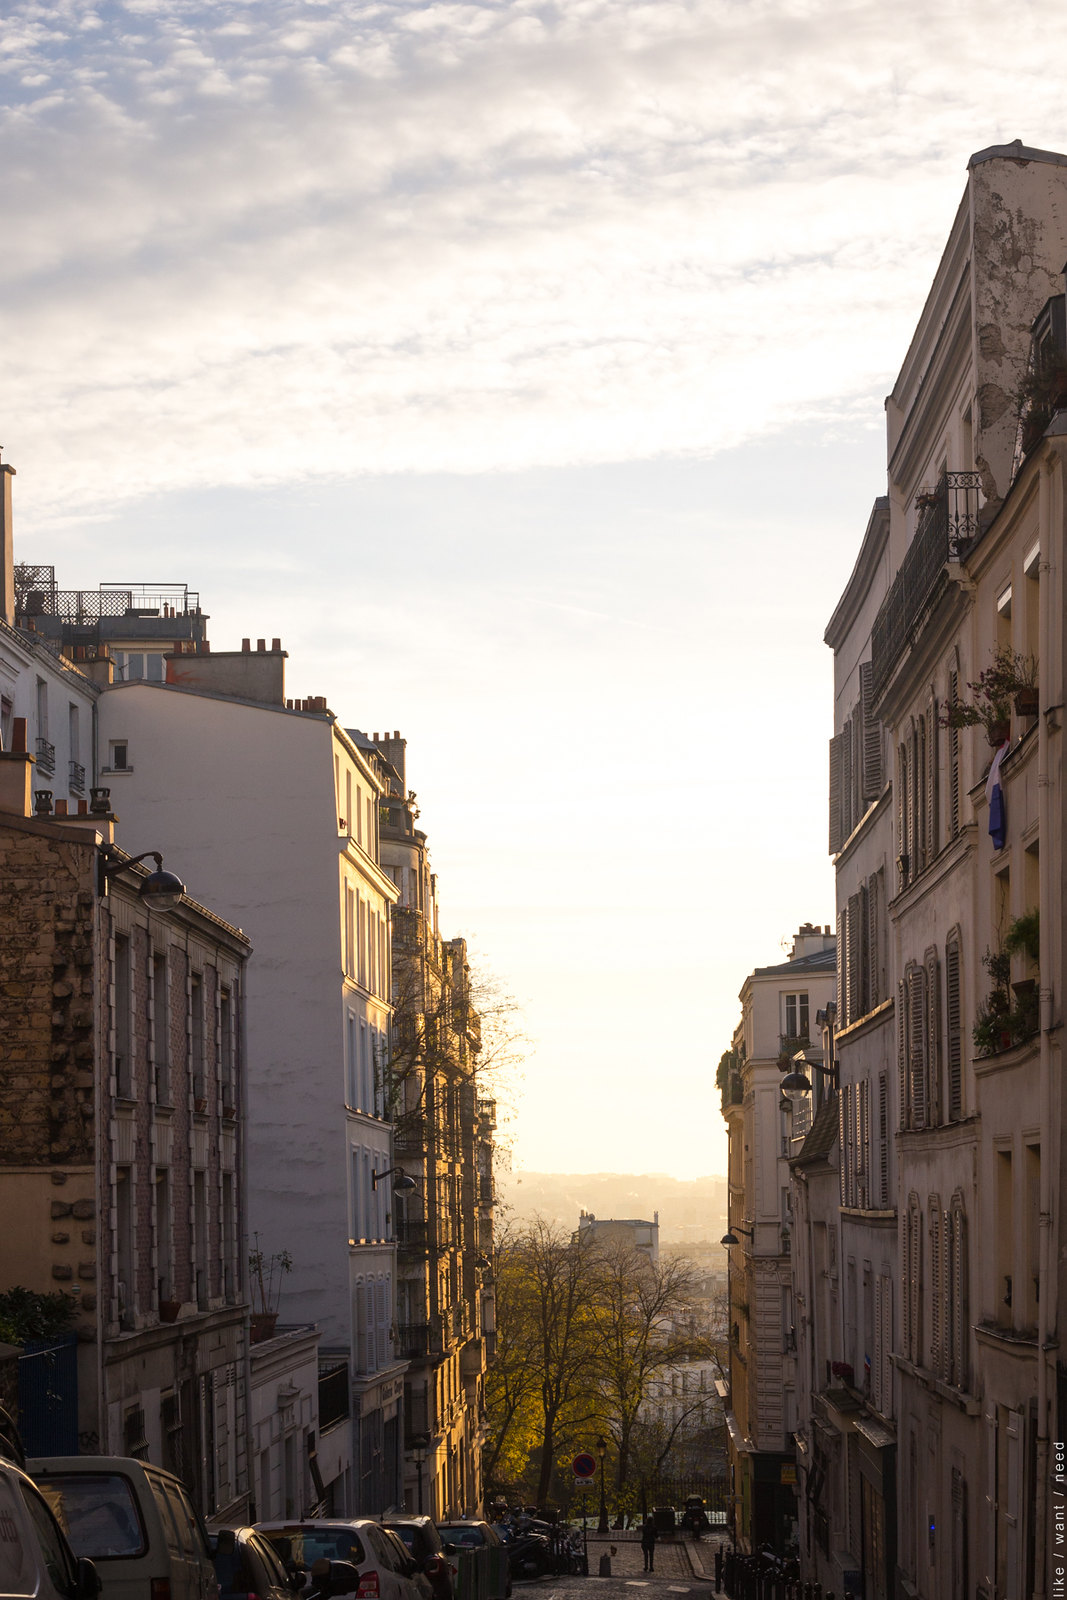 Morning, Montmartre